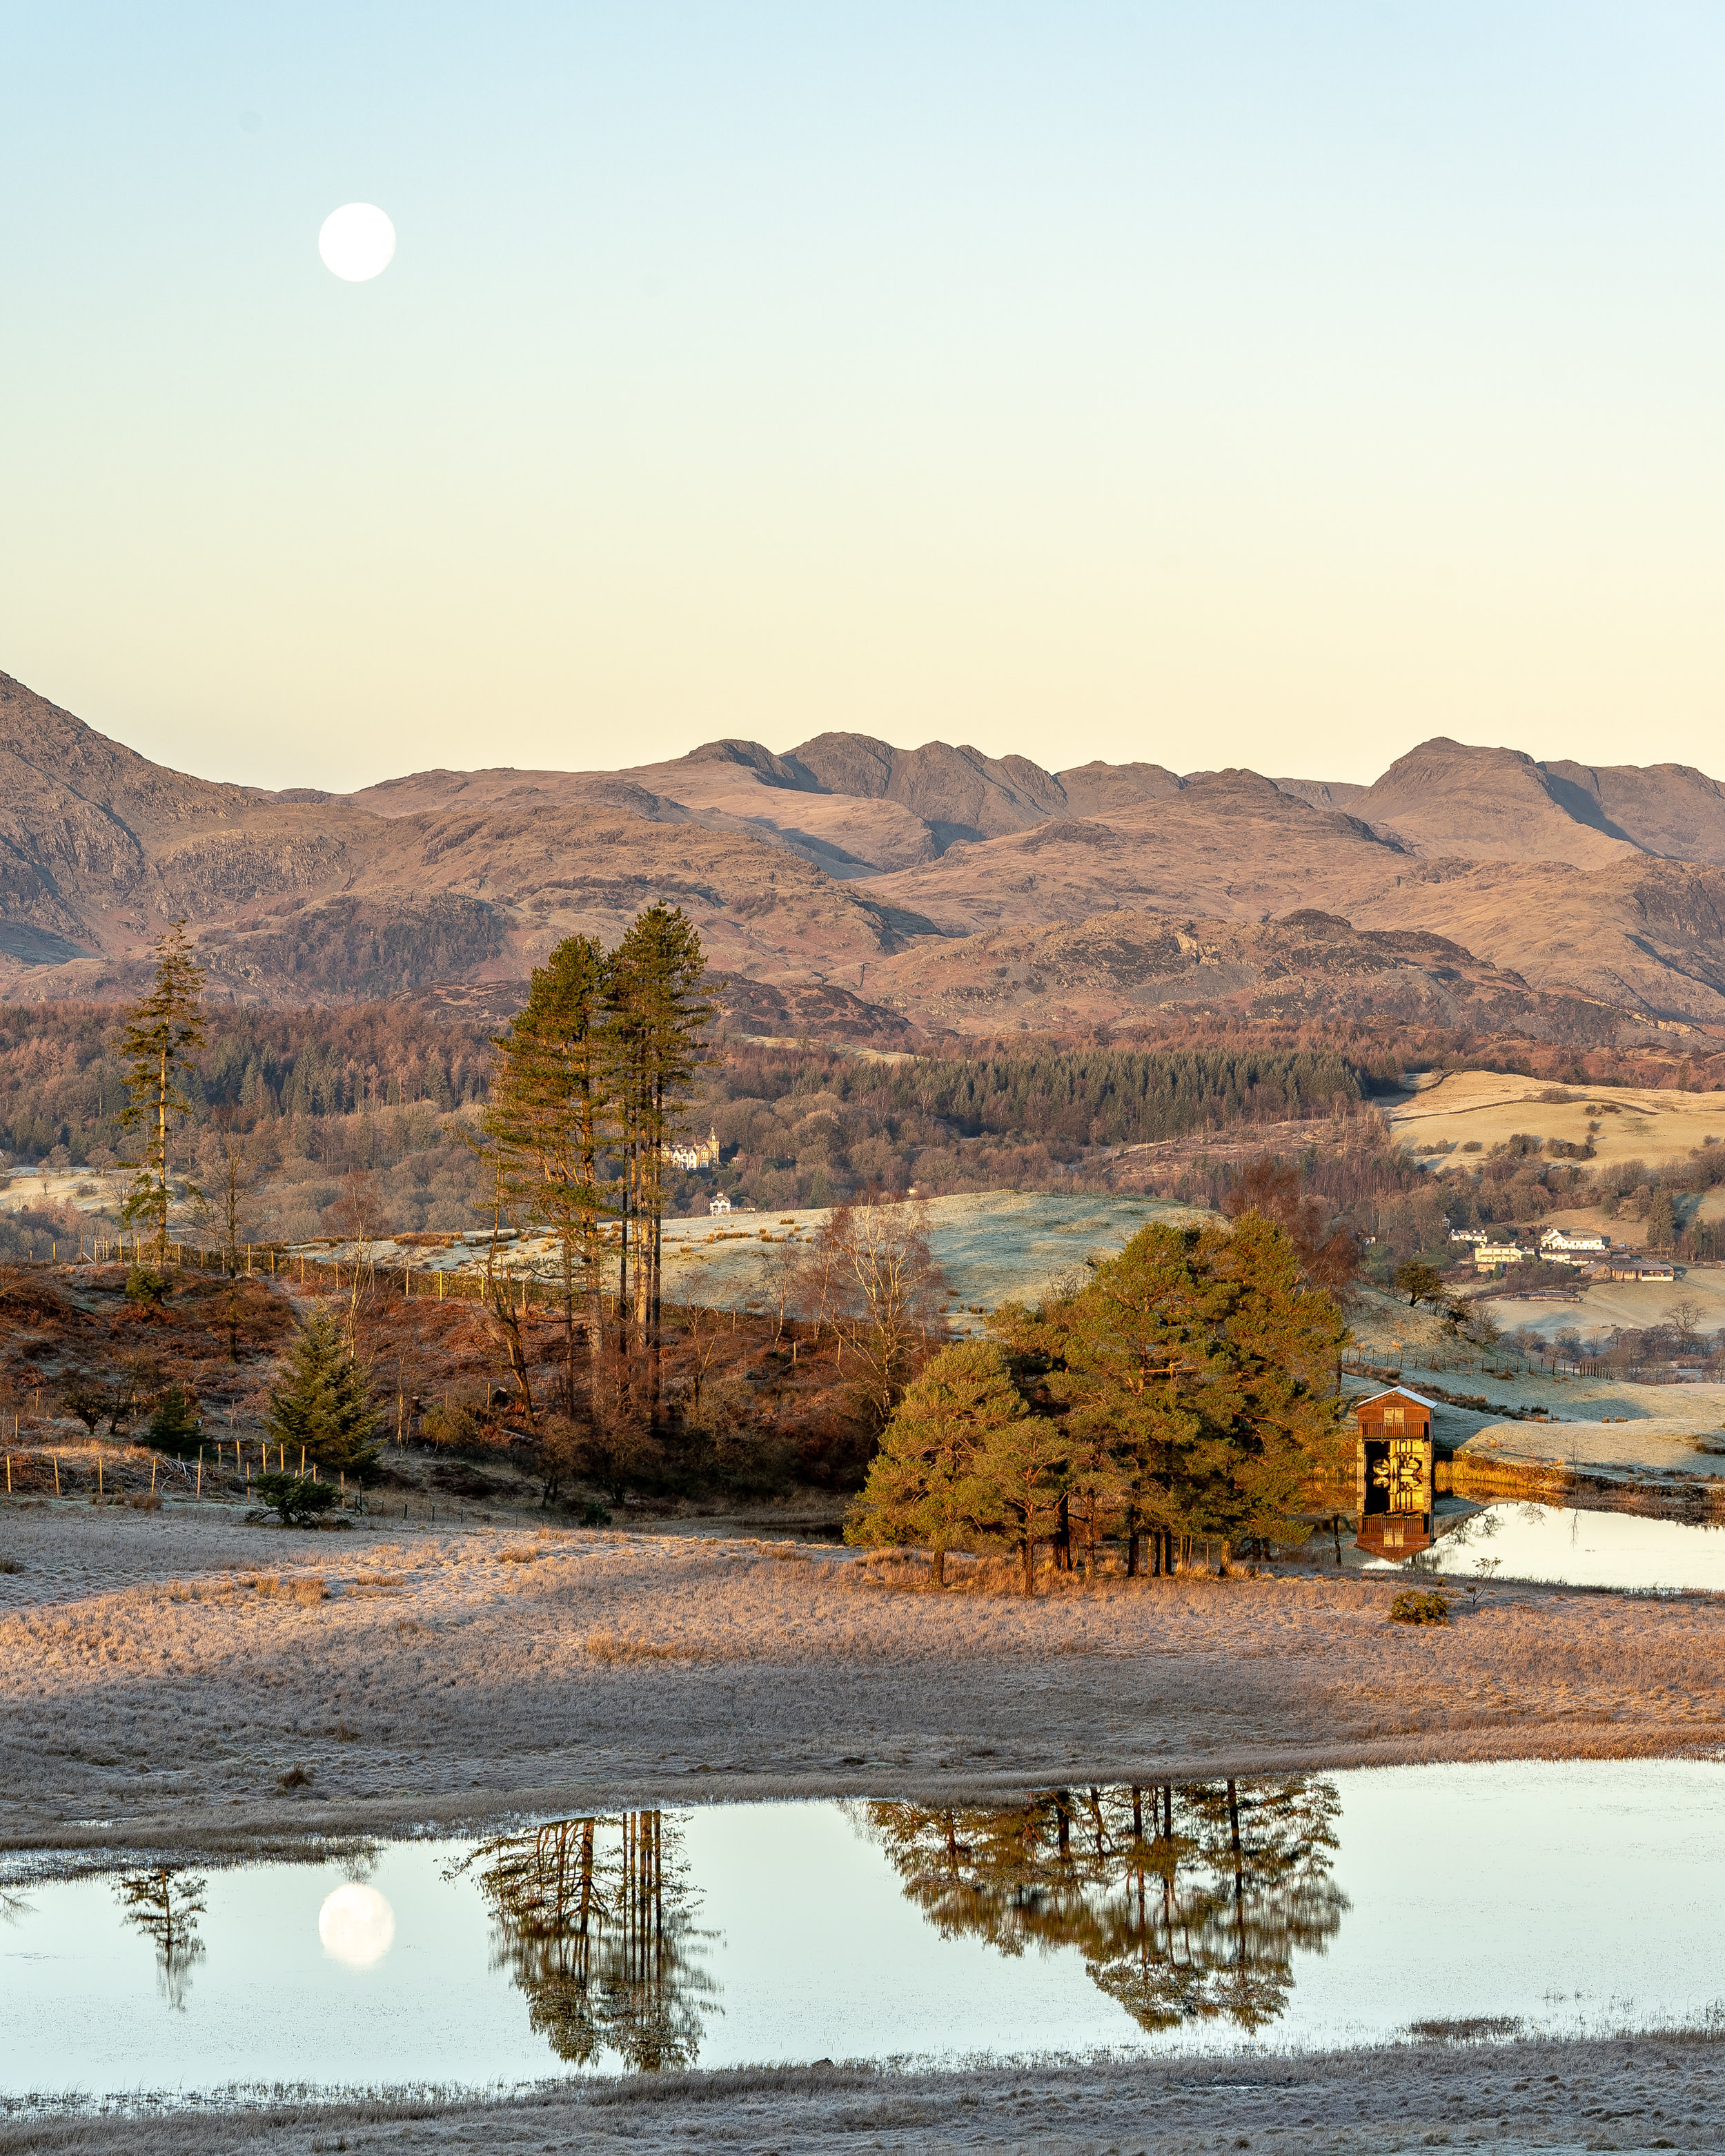 Wise Een Tarn & Crinkle Crags at Sunrise, December 2018   f/11, 1/30 sec, 100mm   Lucky Shot... I was on a different part of the hill when I realised the moon would reflect in the Tarn, so I ran around the hill like a loon with the tripod rig looking for the best composition I could find and took a bunch while the reflection was there. This shot was the first I took, before it fell too low and the reflection was gone. Turned out I had about 2 minutes to grab the shot. By the time I'd finished I realised I couldn't remember where my kit bag was 🤣. (I eventually found it - it was about 200m away!)